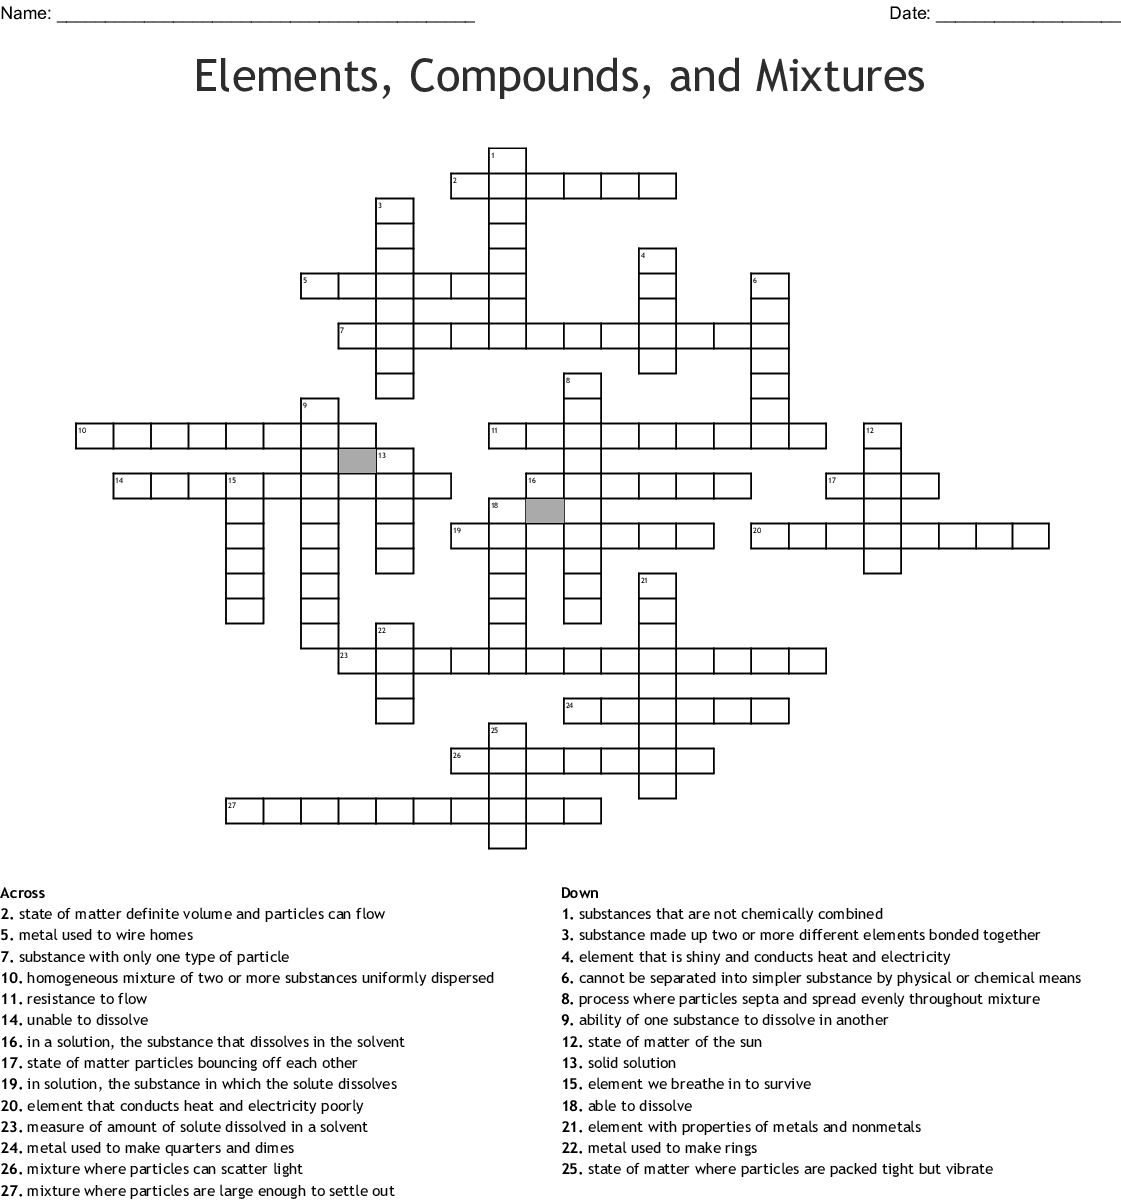 Elements Compoundixtures Crossword